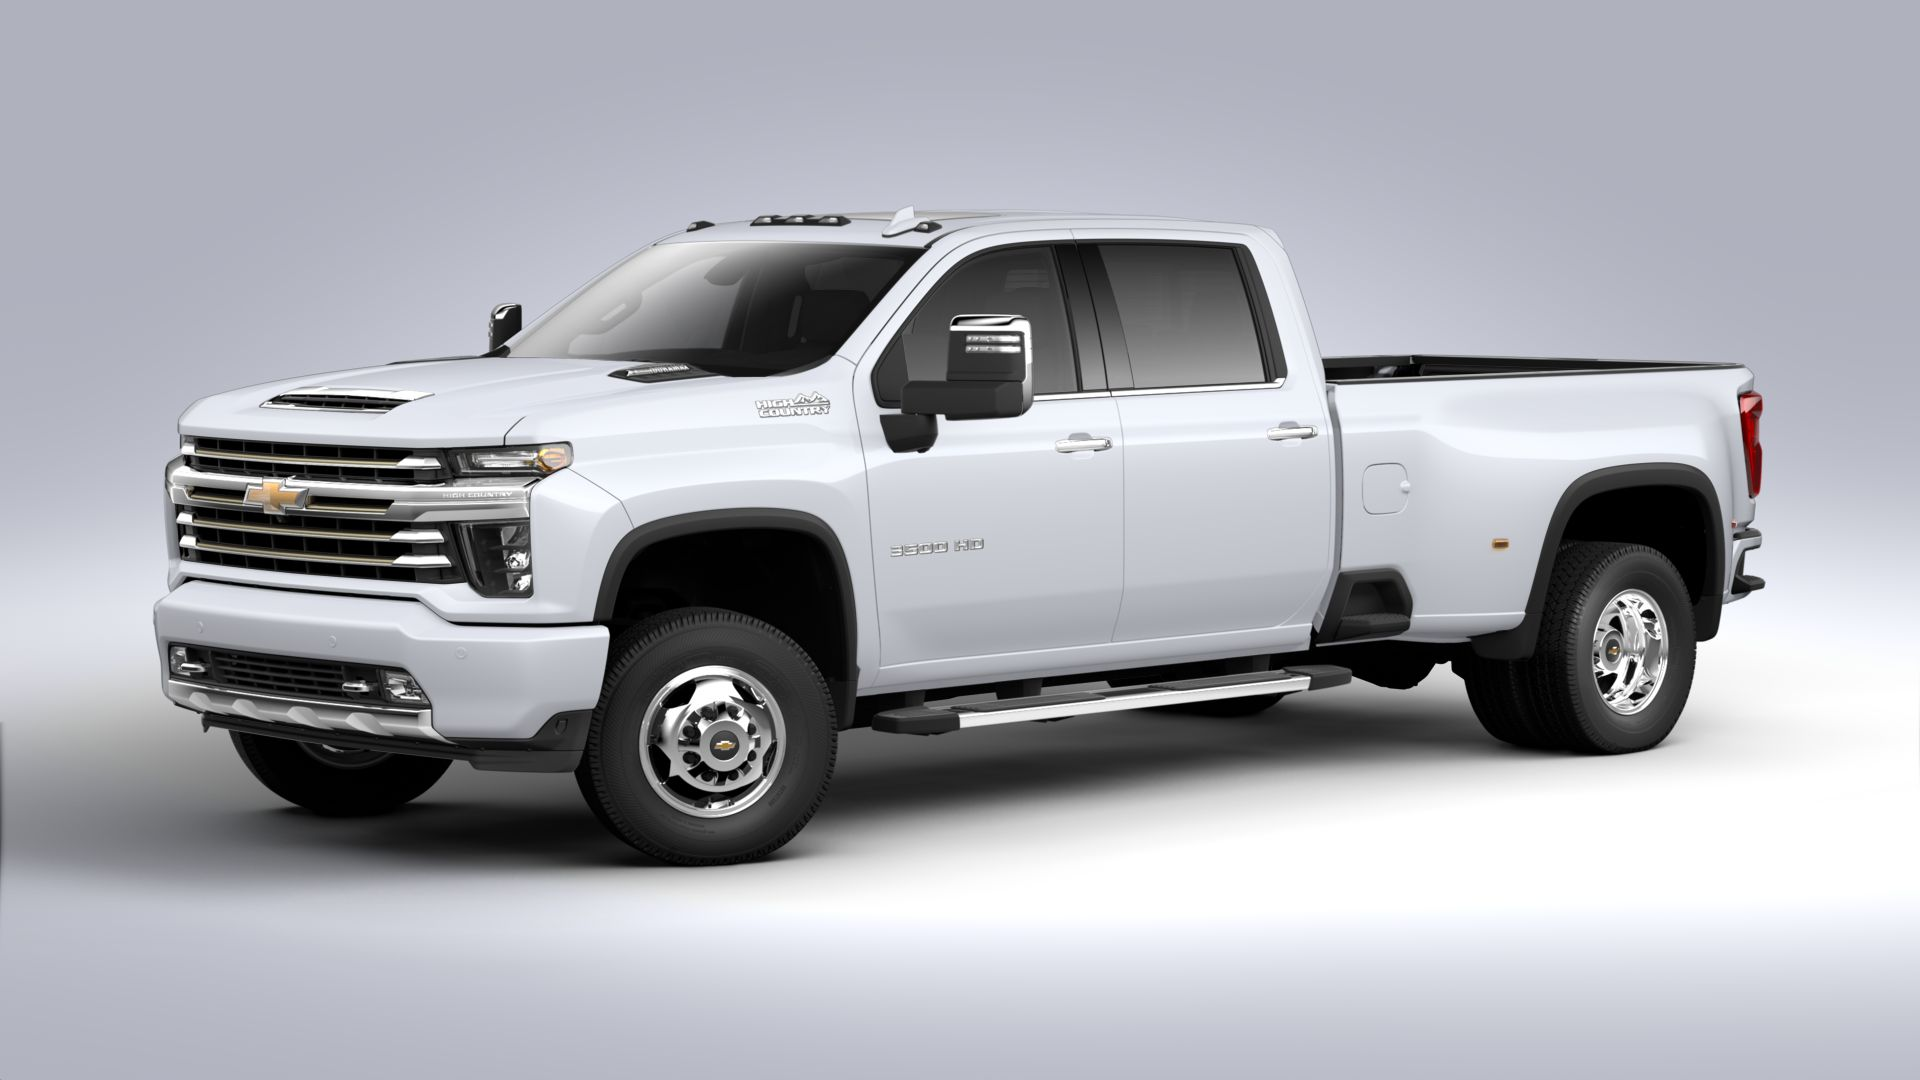 2020 Chevrolet Silverado 3500 HD High Country DRW